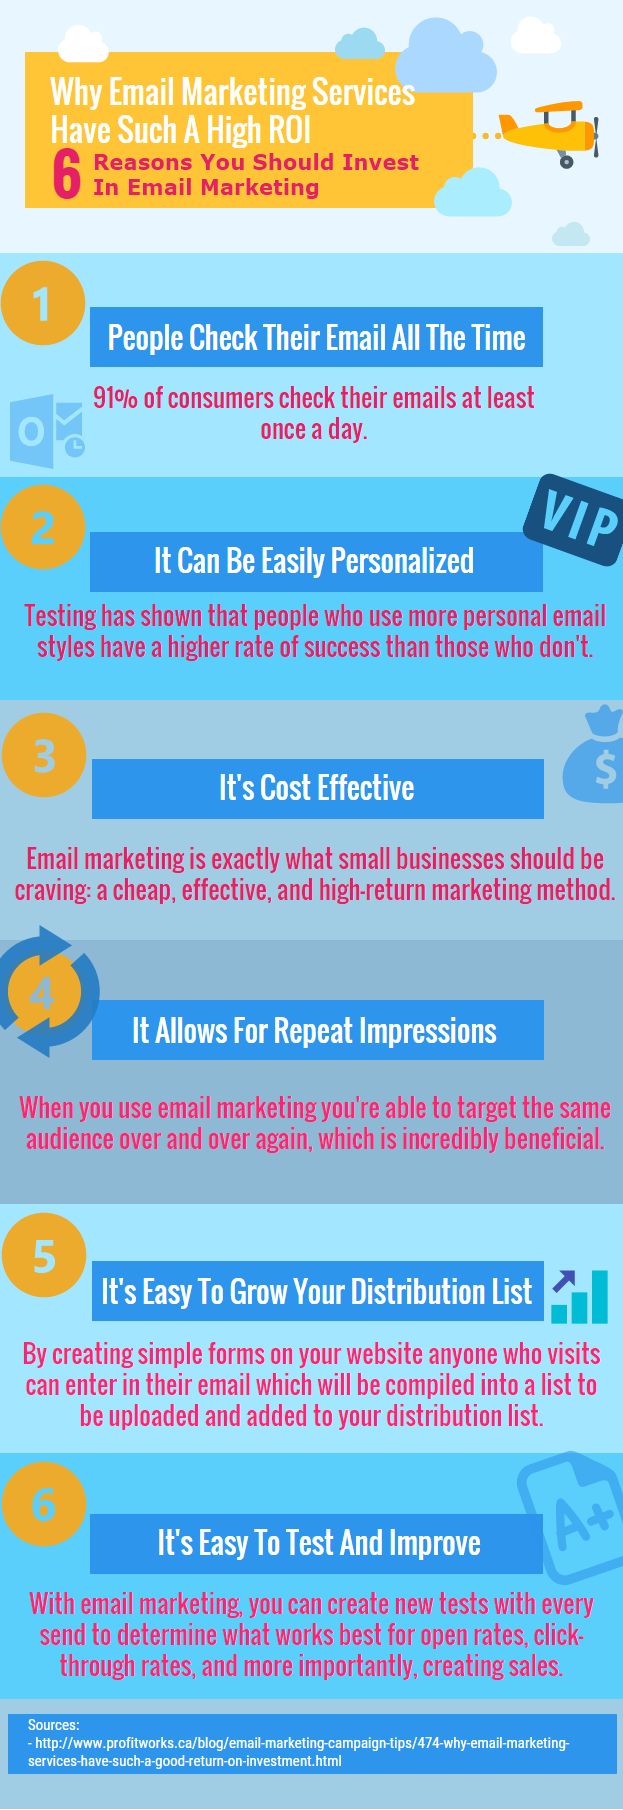 Email Marketing High ROI infographic